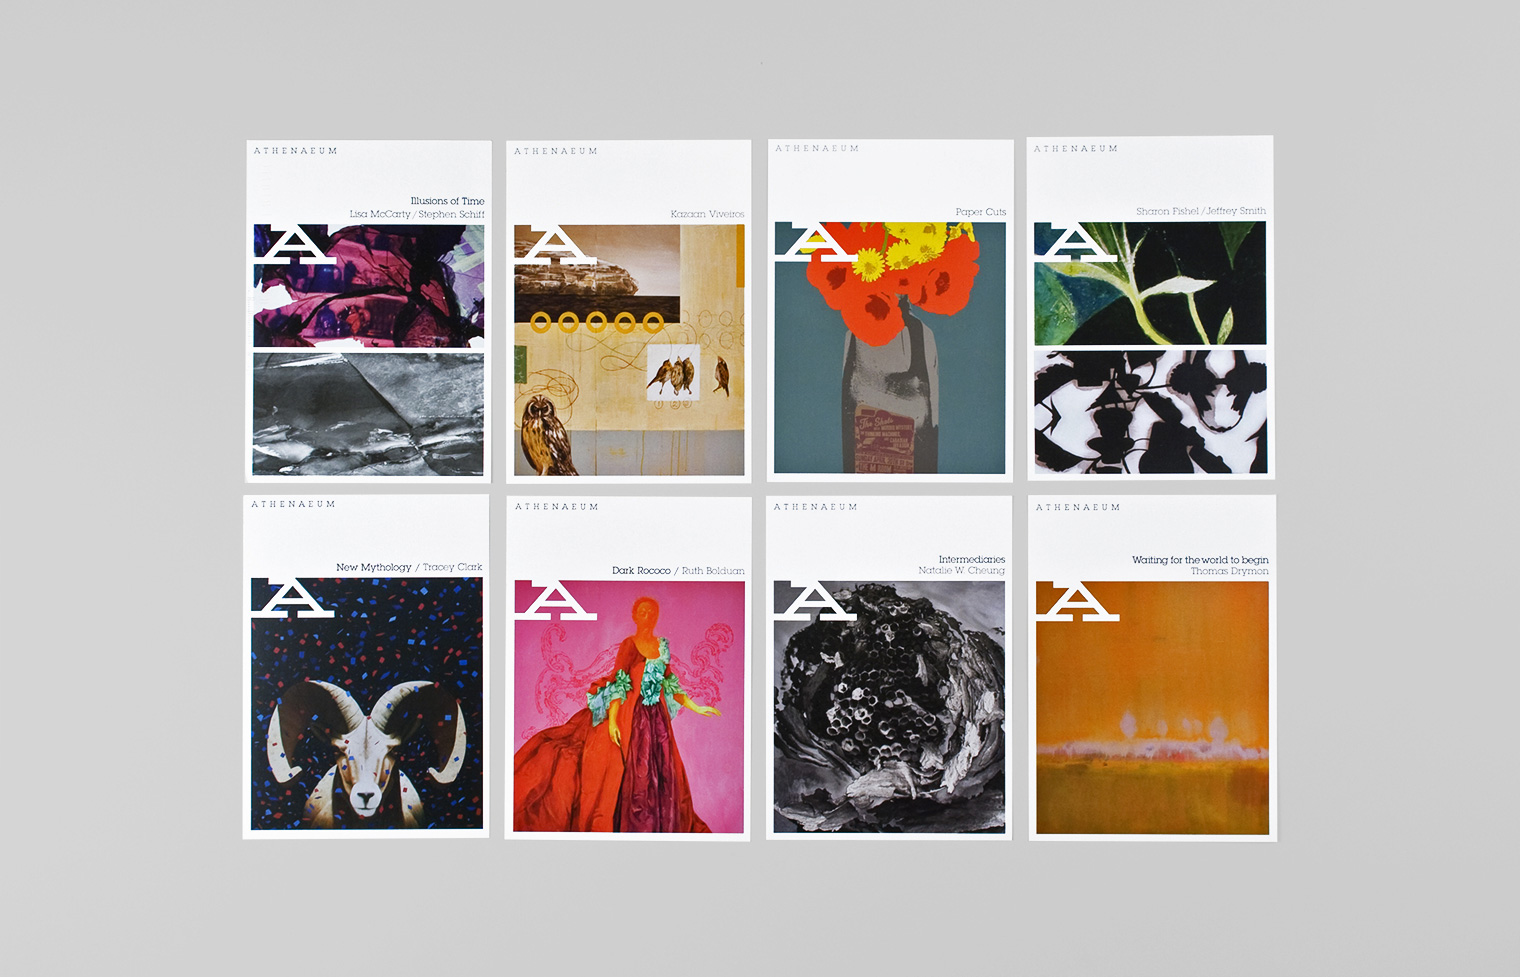 Eight announcement cards for different art exhibitions maintain a brand consistency.